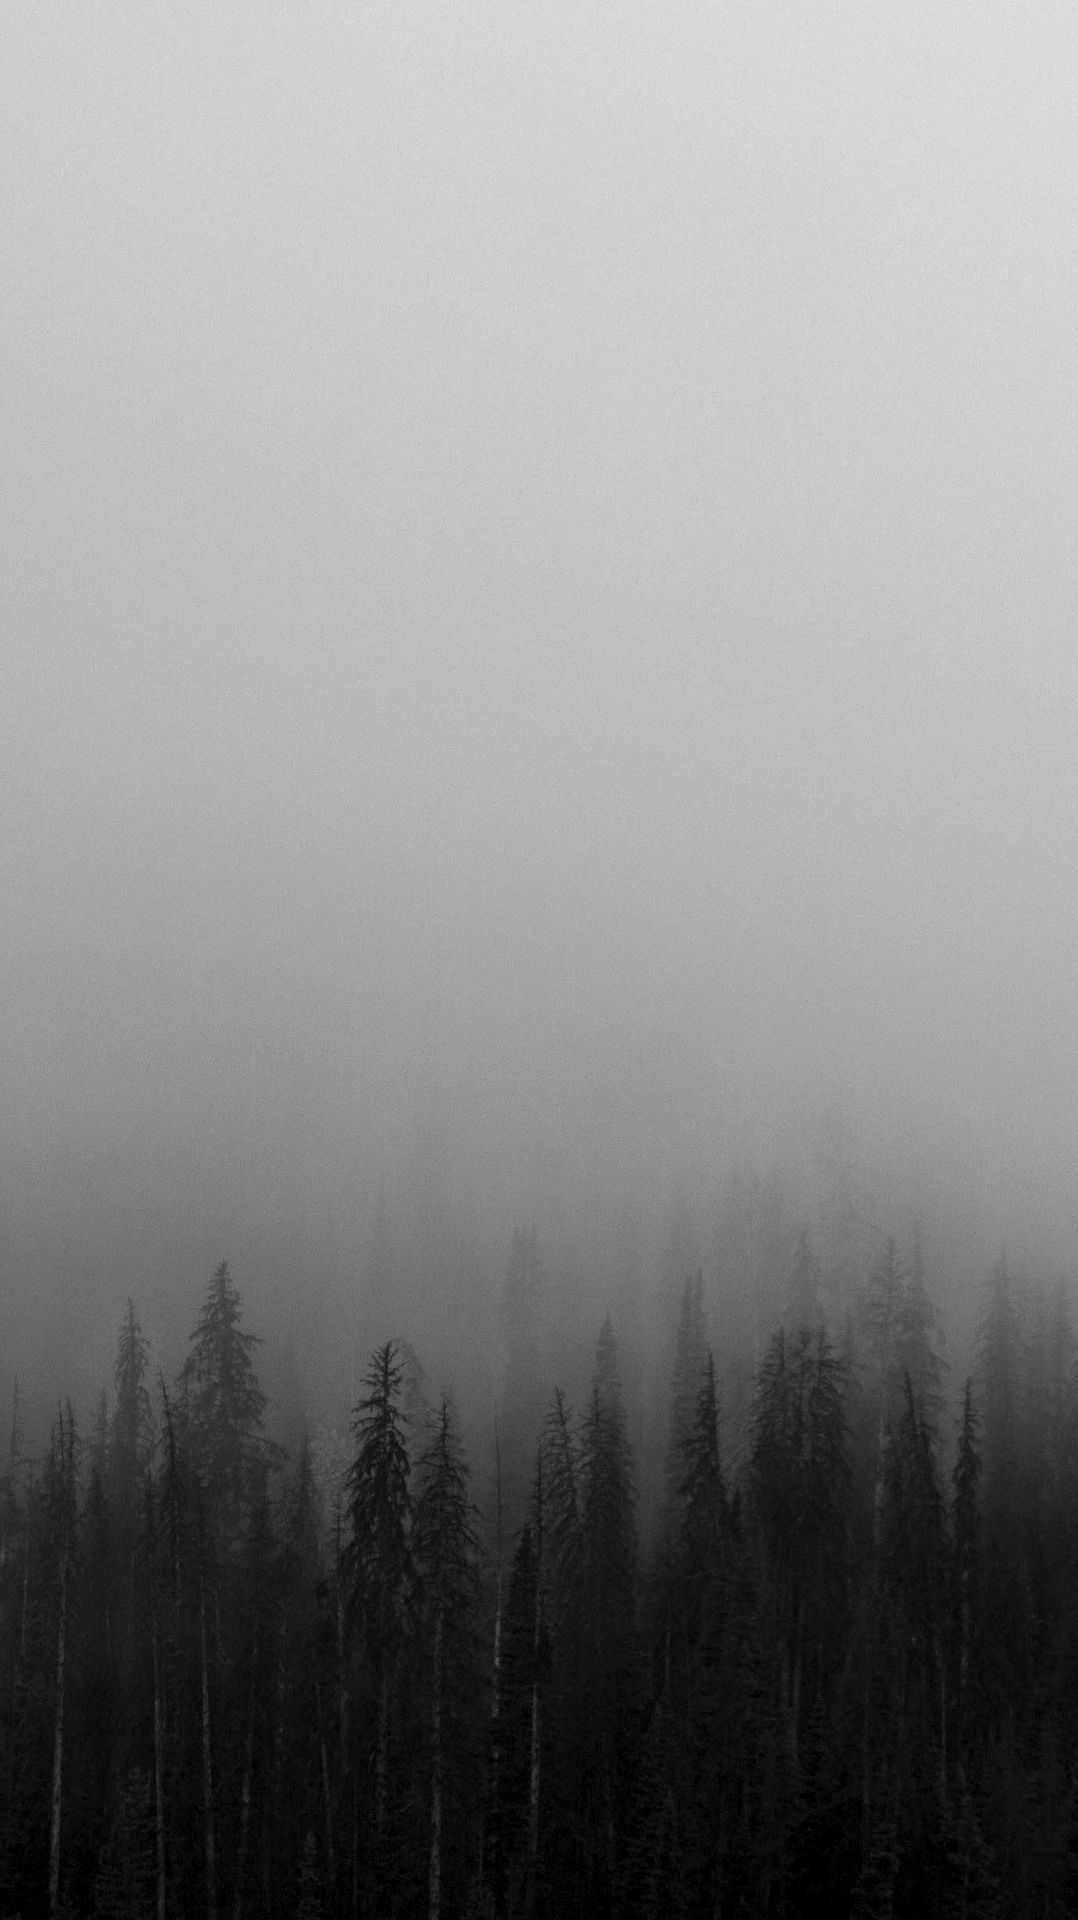 Black-and-White-Mist-Forests-Wallpaper | iPhone Wallpapers in 2019 | Iphone wallpaper, Black ...